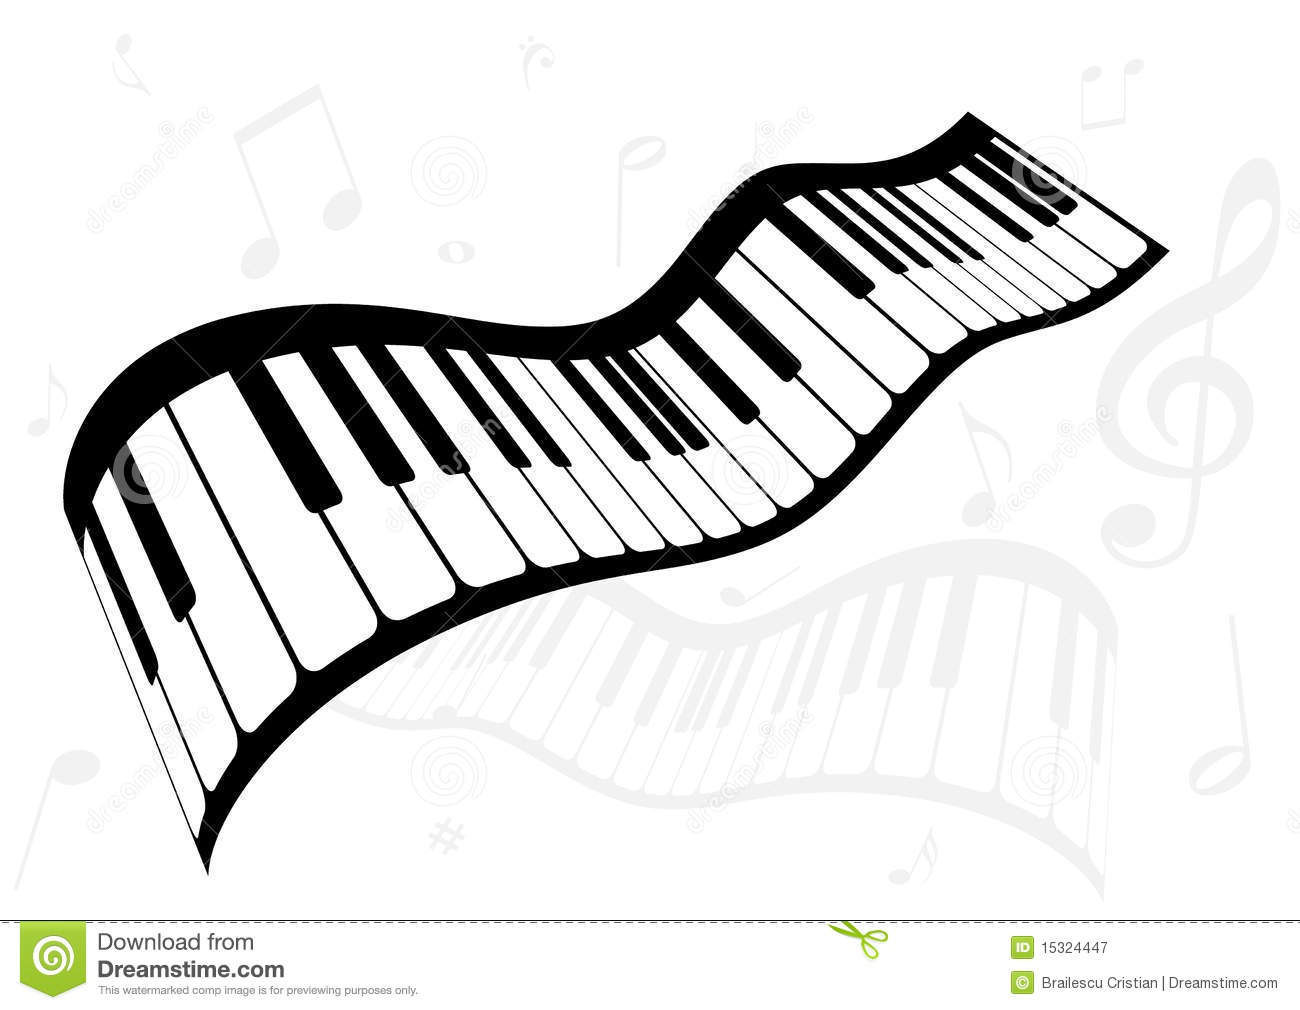 Illustration Of A Piano And Music Notes Stock Vector